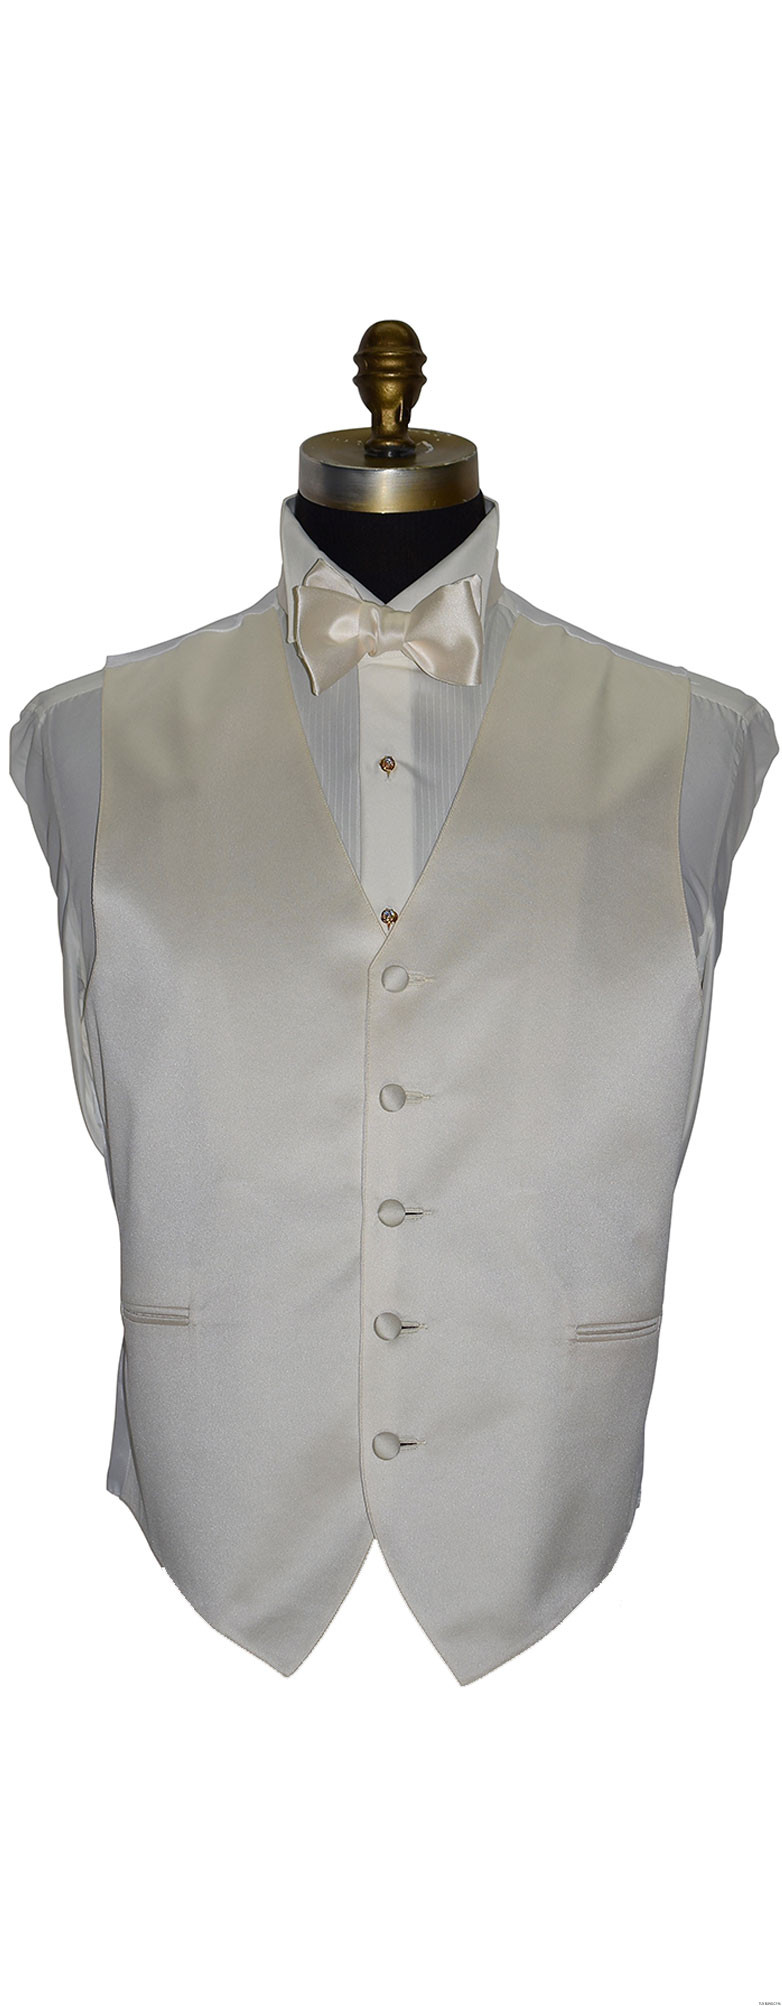 men's and boy's ivory satin vest and tie-yourself bowtie